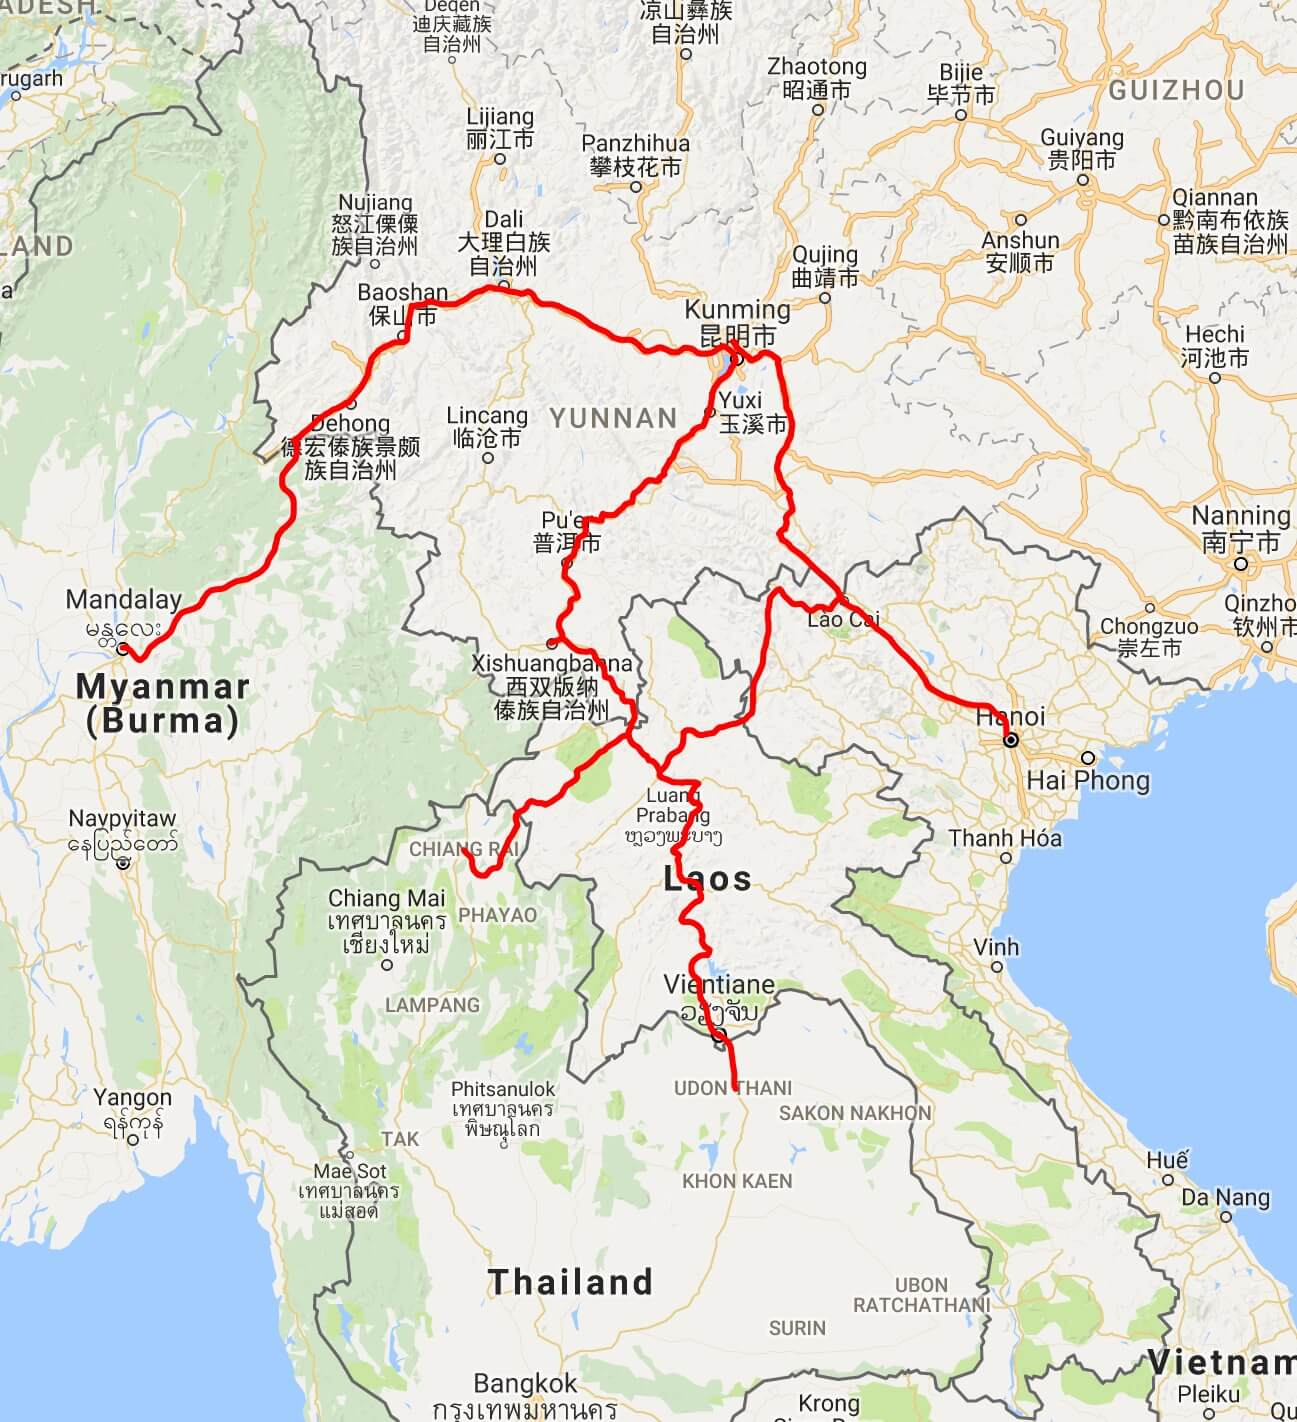 Map Of China And Southeast Asia.Overland Routes From China To Southeast Asia 4corners7seas